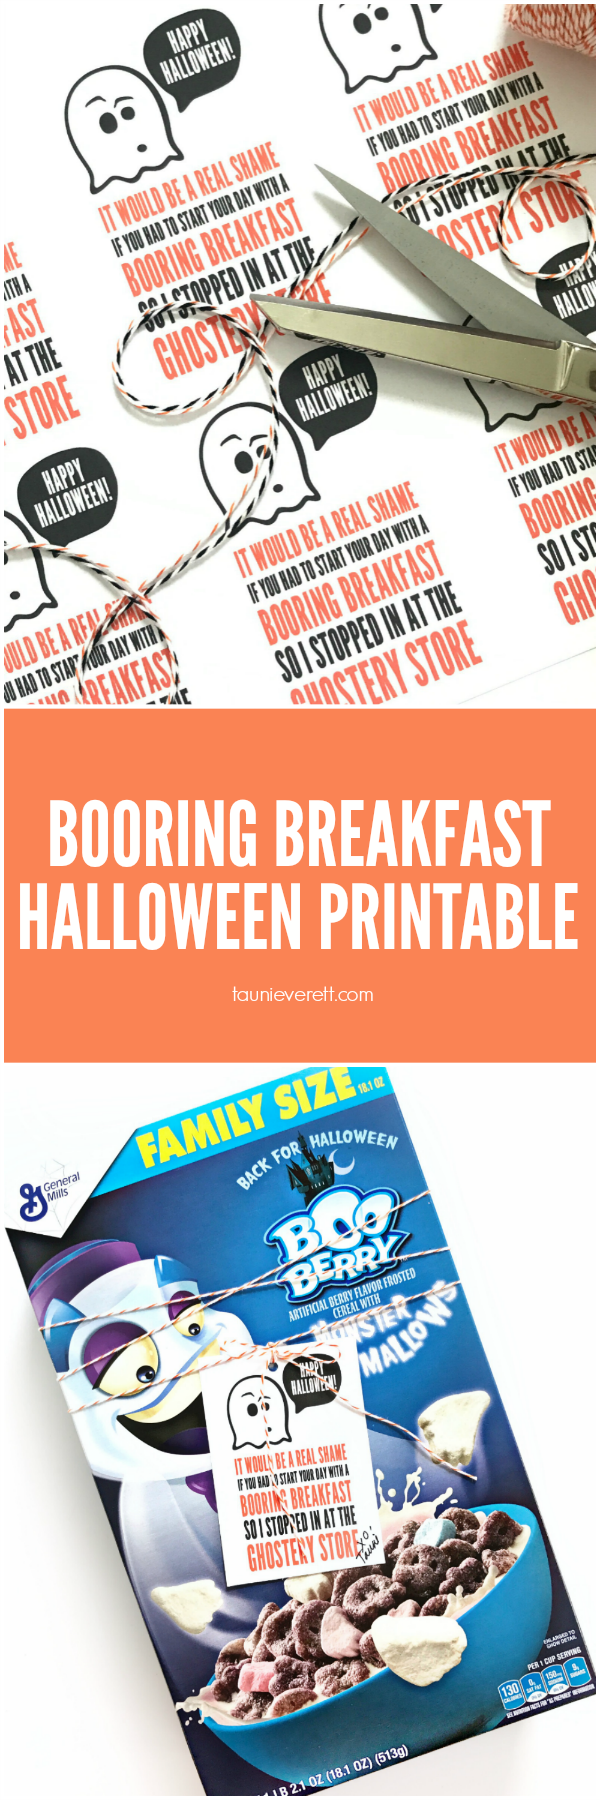 Booring Breakfast Halloween Printable. This free Halloween printable gift tag is perfect for pairing with a fun holiday gift. #halloween #halloweenprintable #halloweengift